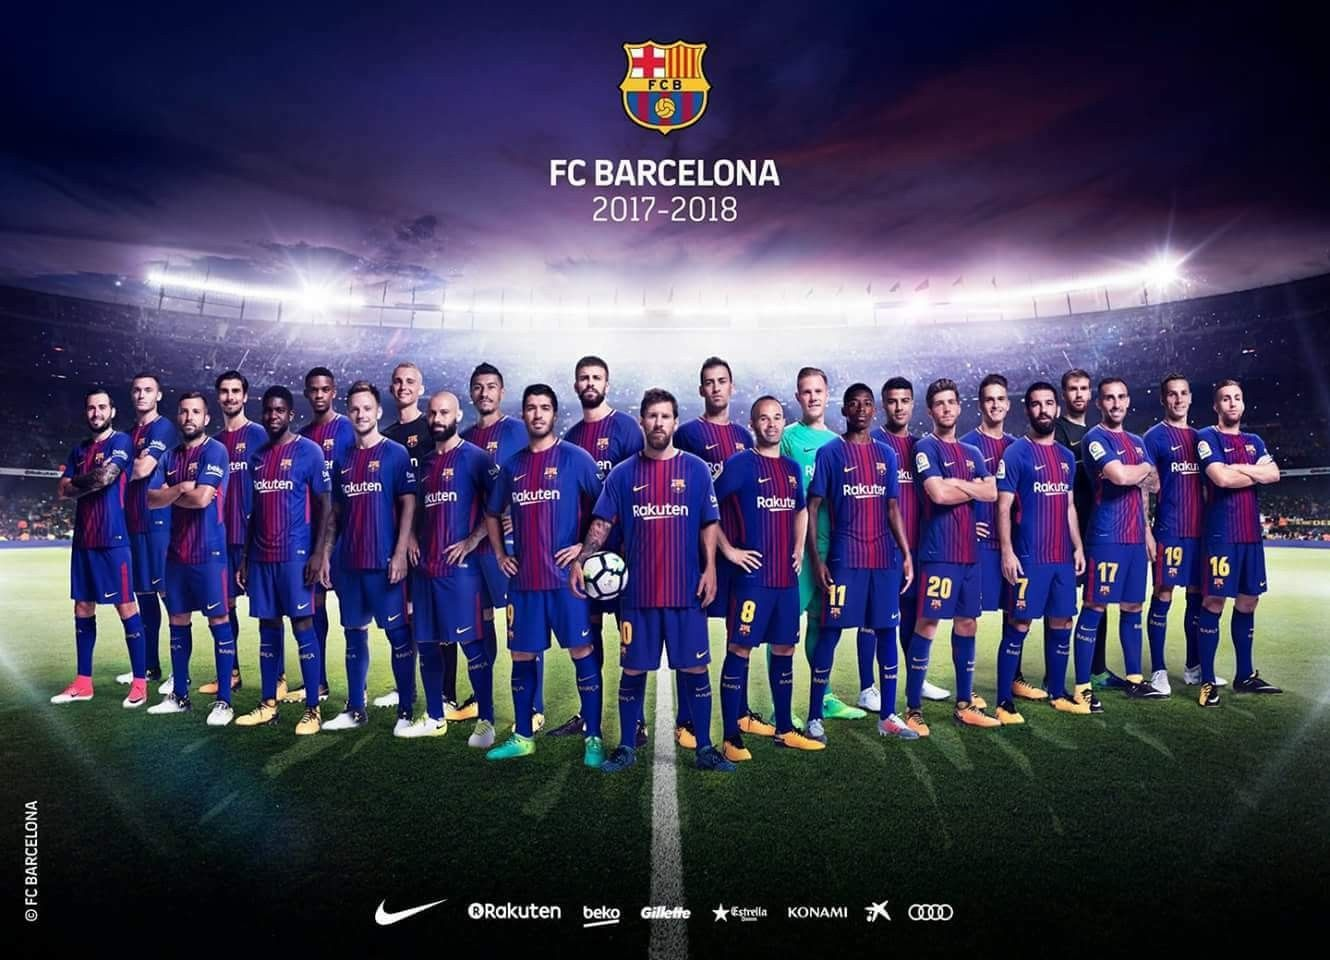 FC Barcelona wallpaper FCB Barça 2017 wallpaper | FCB | Pinterest ...